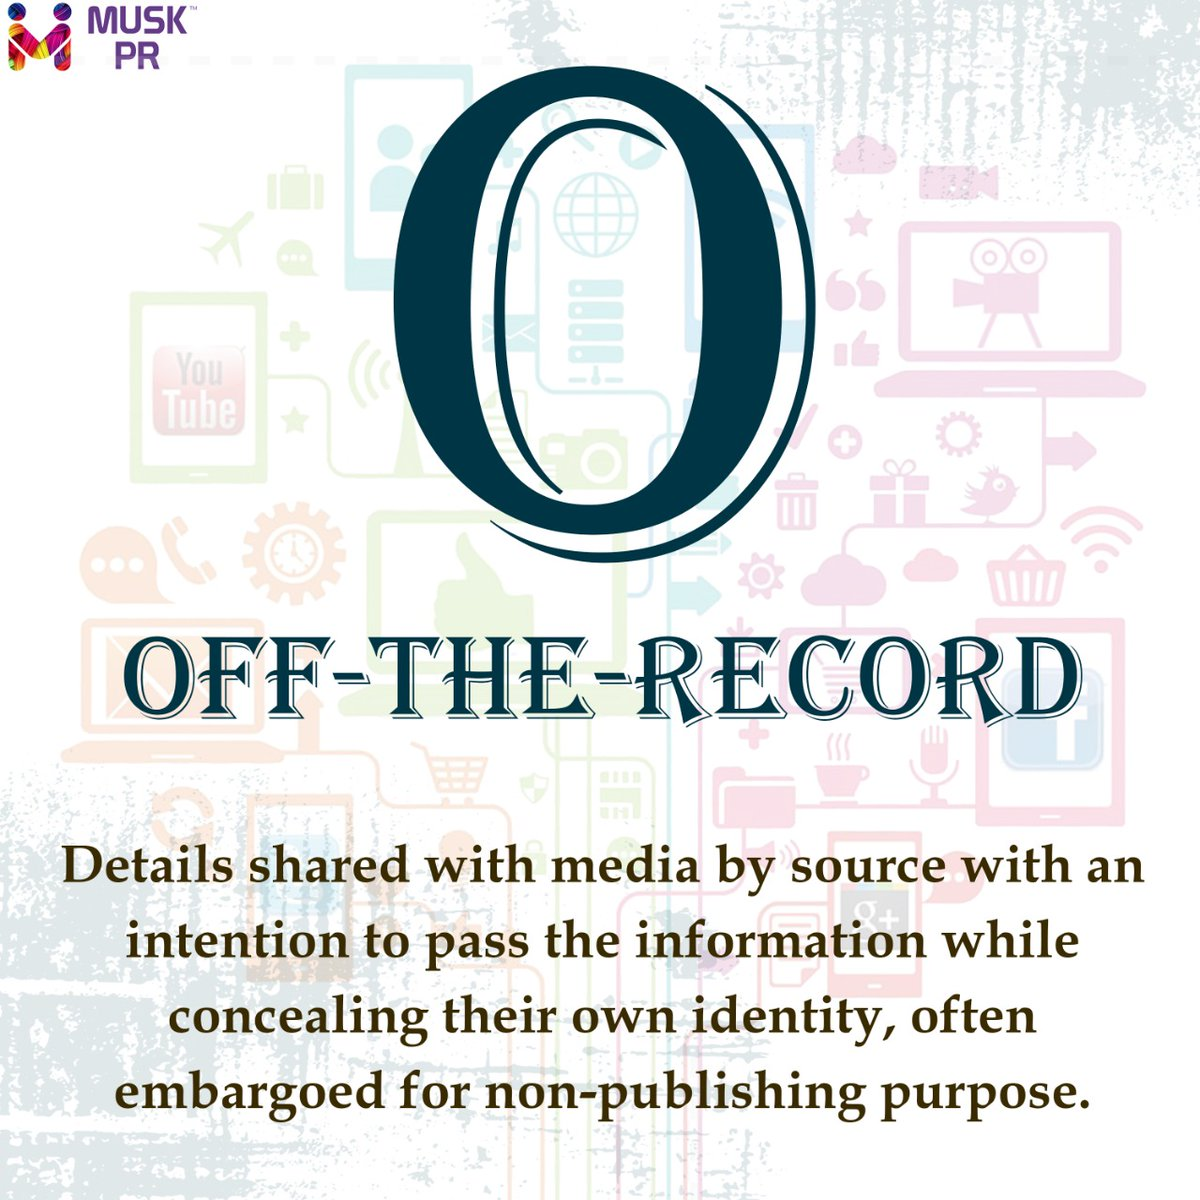 O for Off-The-Record  #muskpublicrelations #Jaipur #AtoZpic.twitter.com/meZCtAtF2D